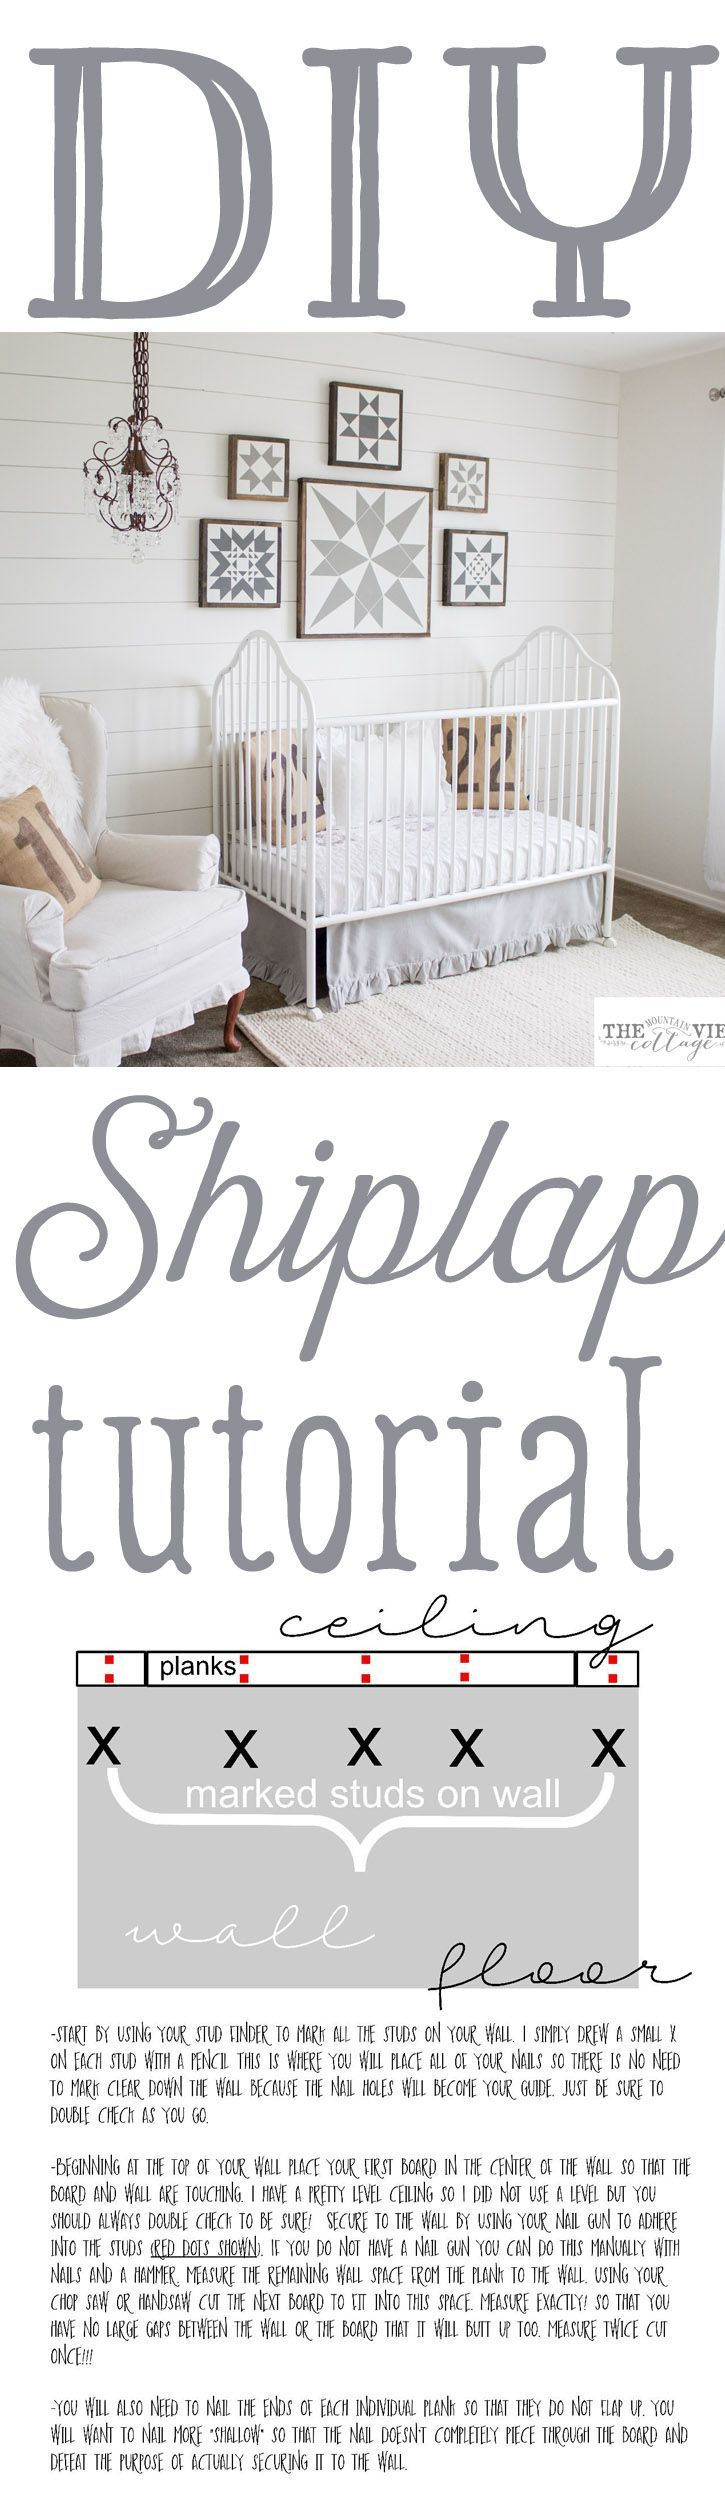 "Diy- Full Tutorial on how to create that beautiful shiplap look in your home! This is especially great for ""cookie cutter"" homes to create a more cozy custom feel!"